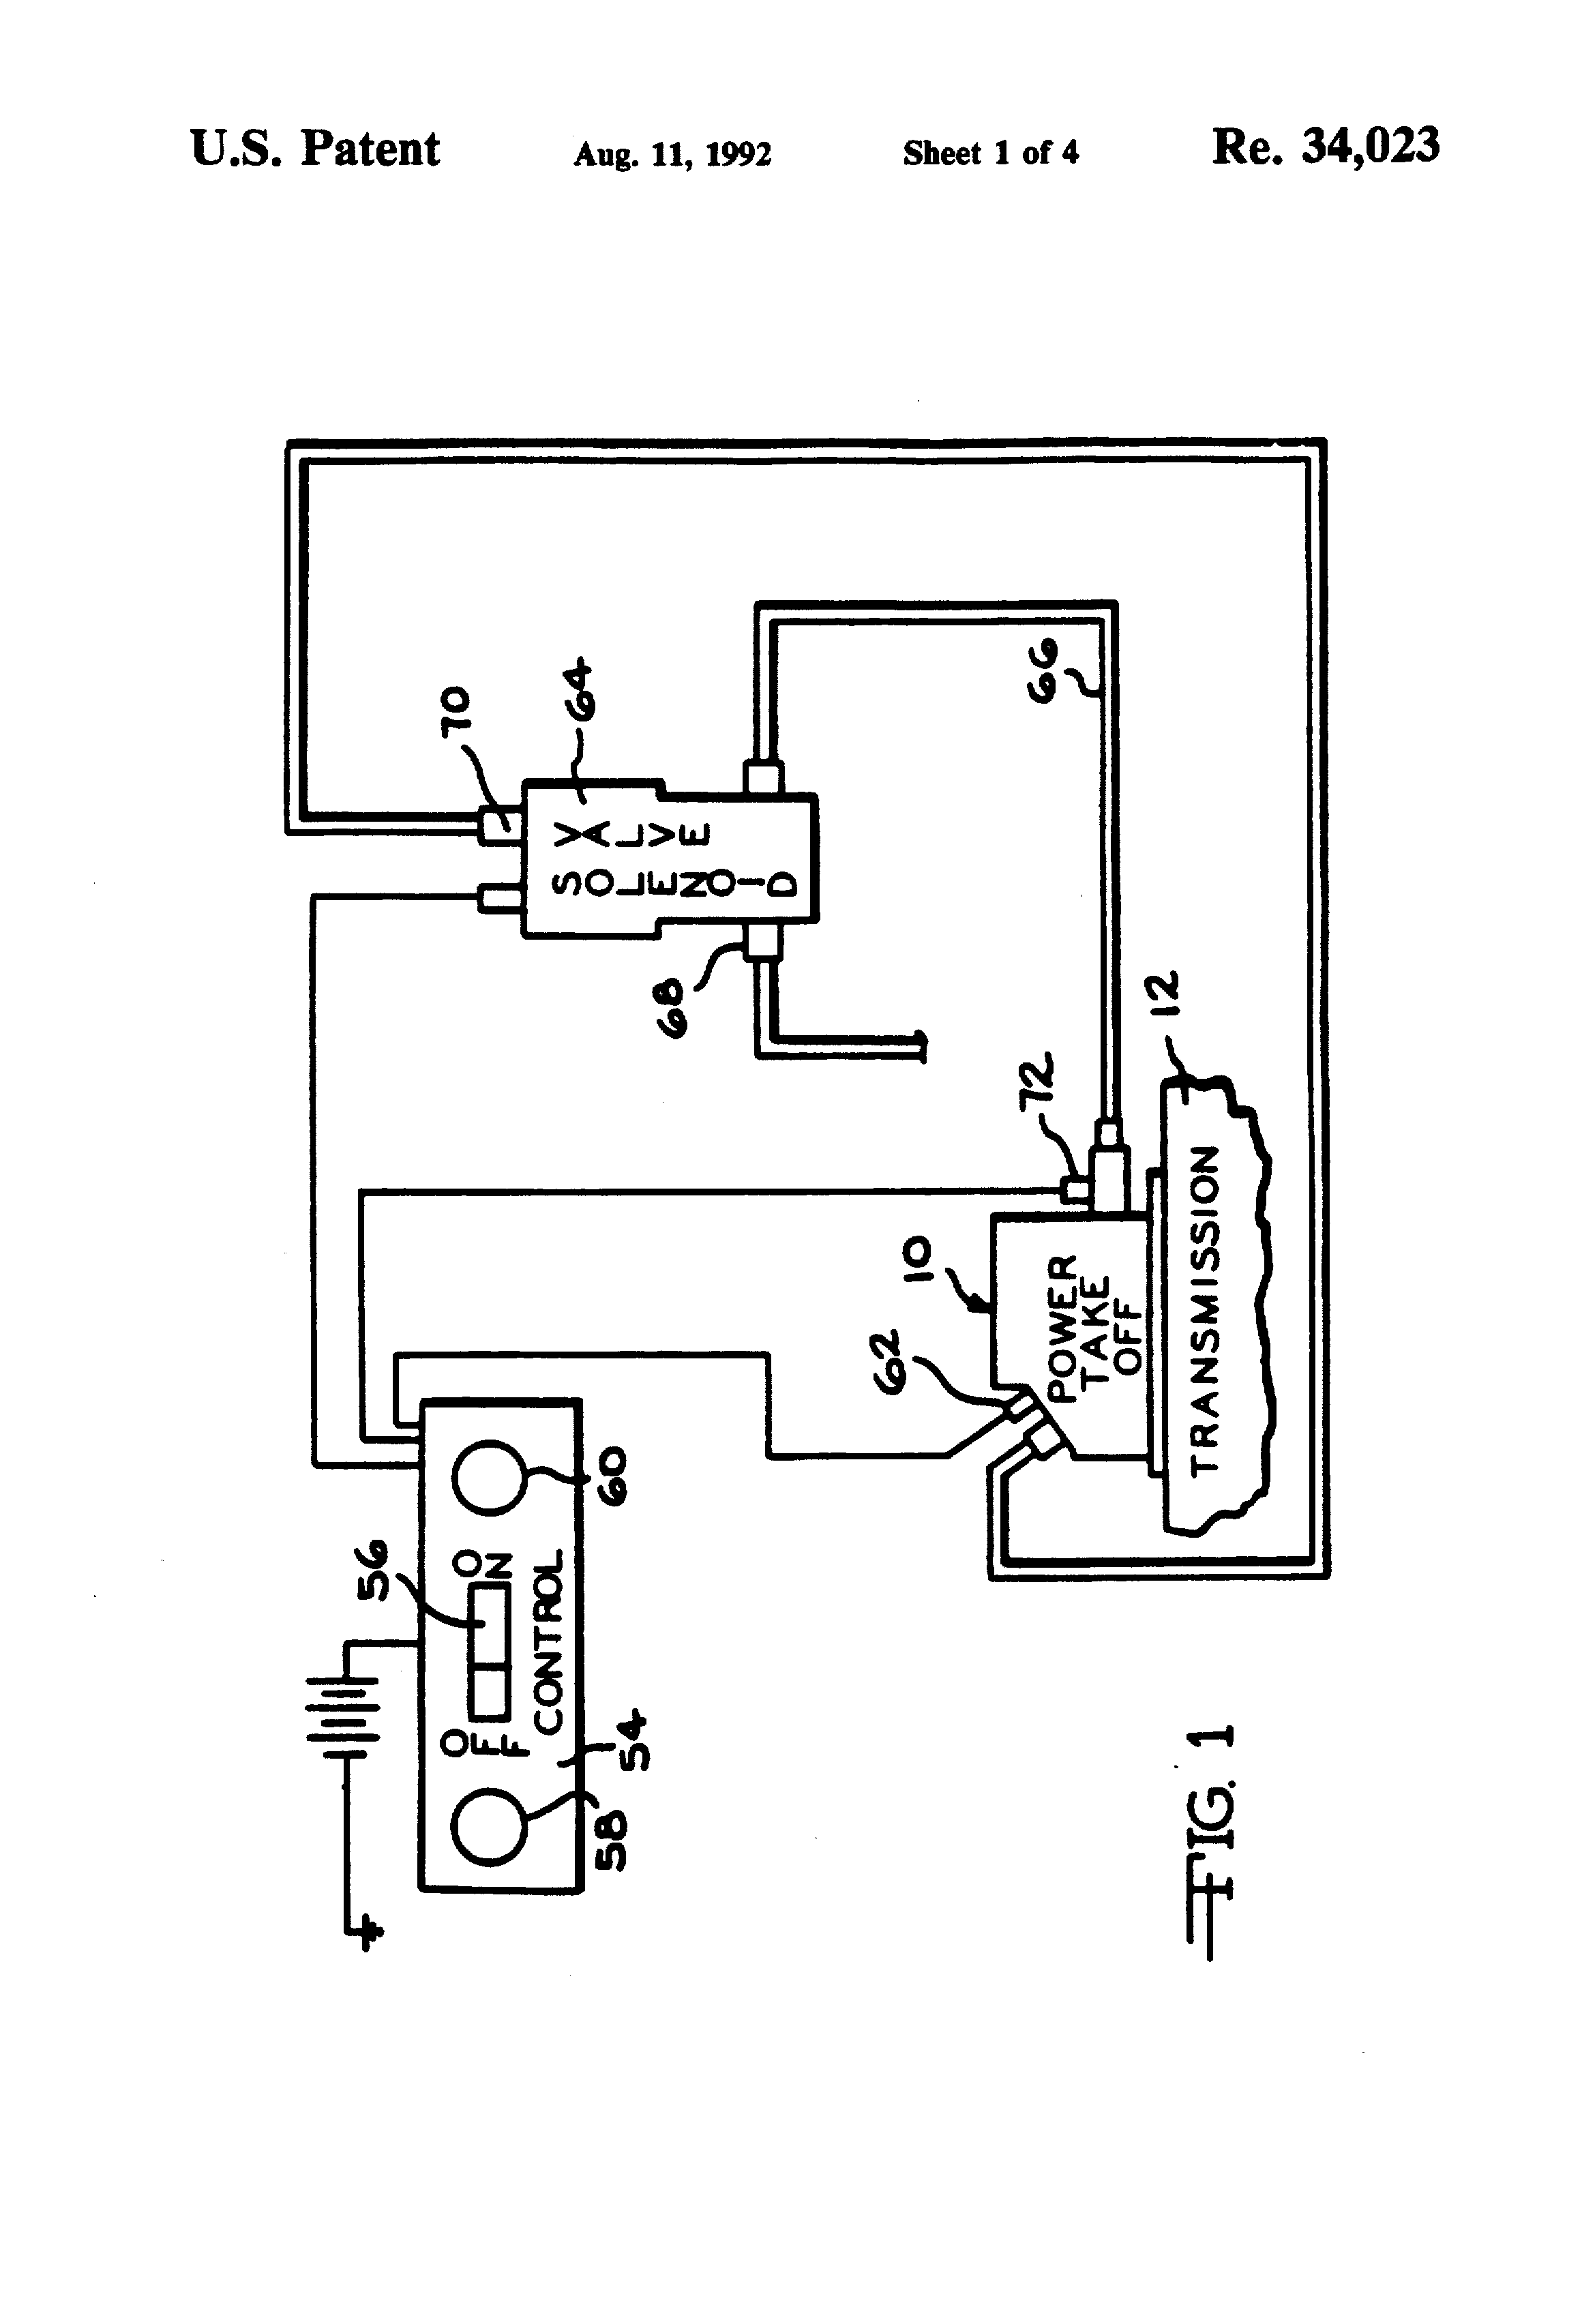 USRE34023 2 muncie pto wiring diagram muncie pto valve \u2022 wiring diagrams j chelsea pto wiring diagram at alyssarenee.co